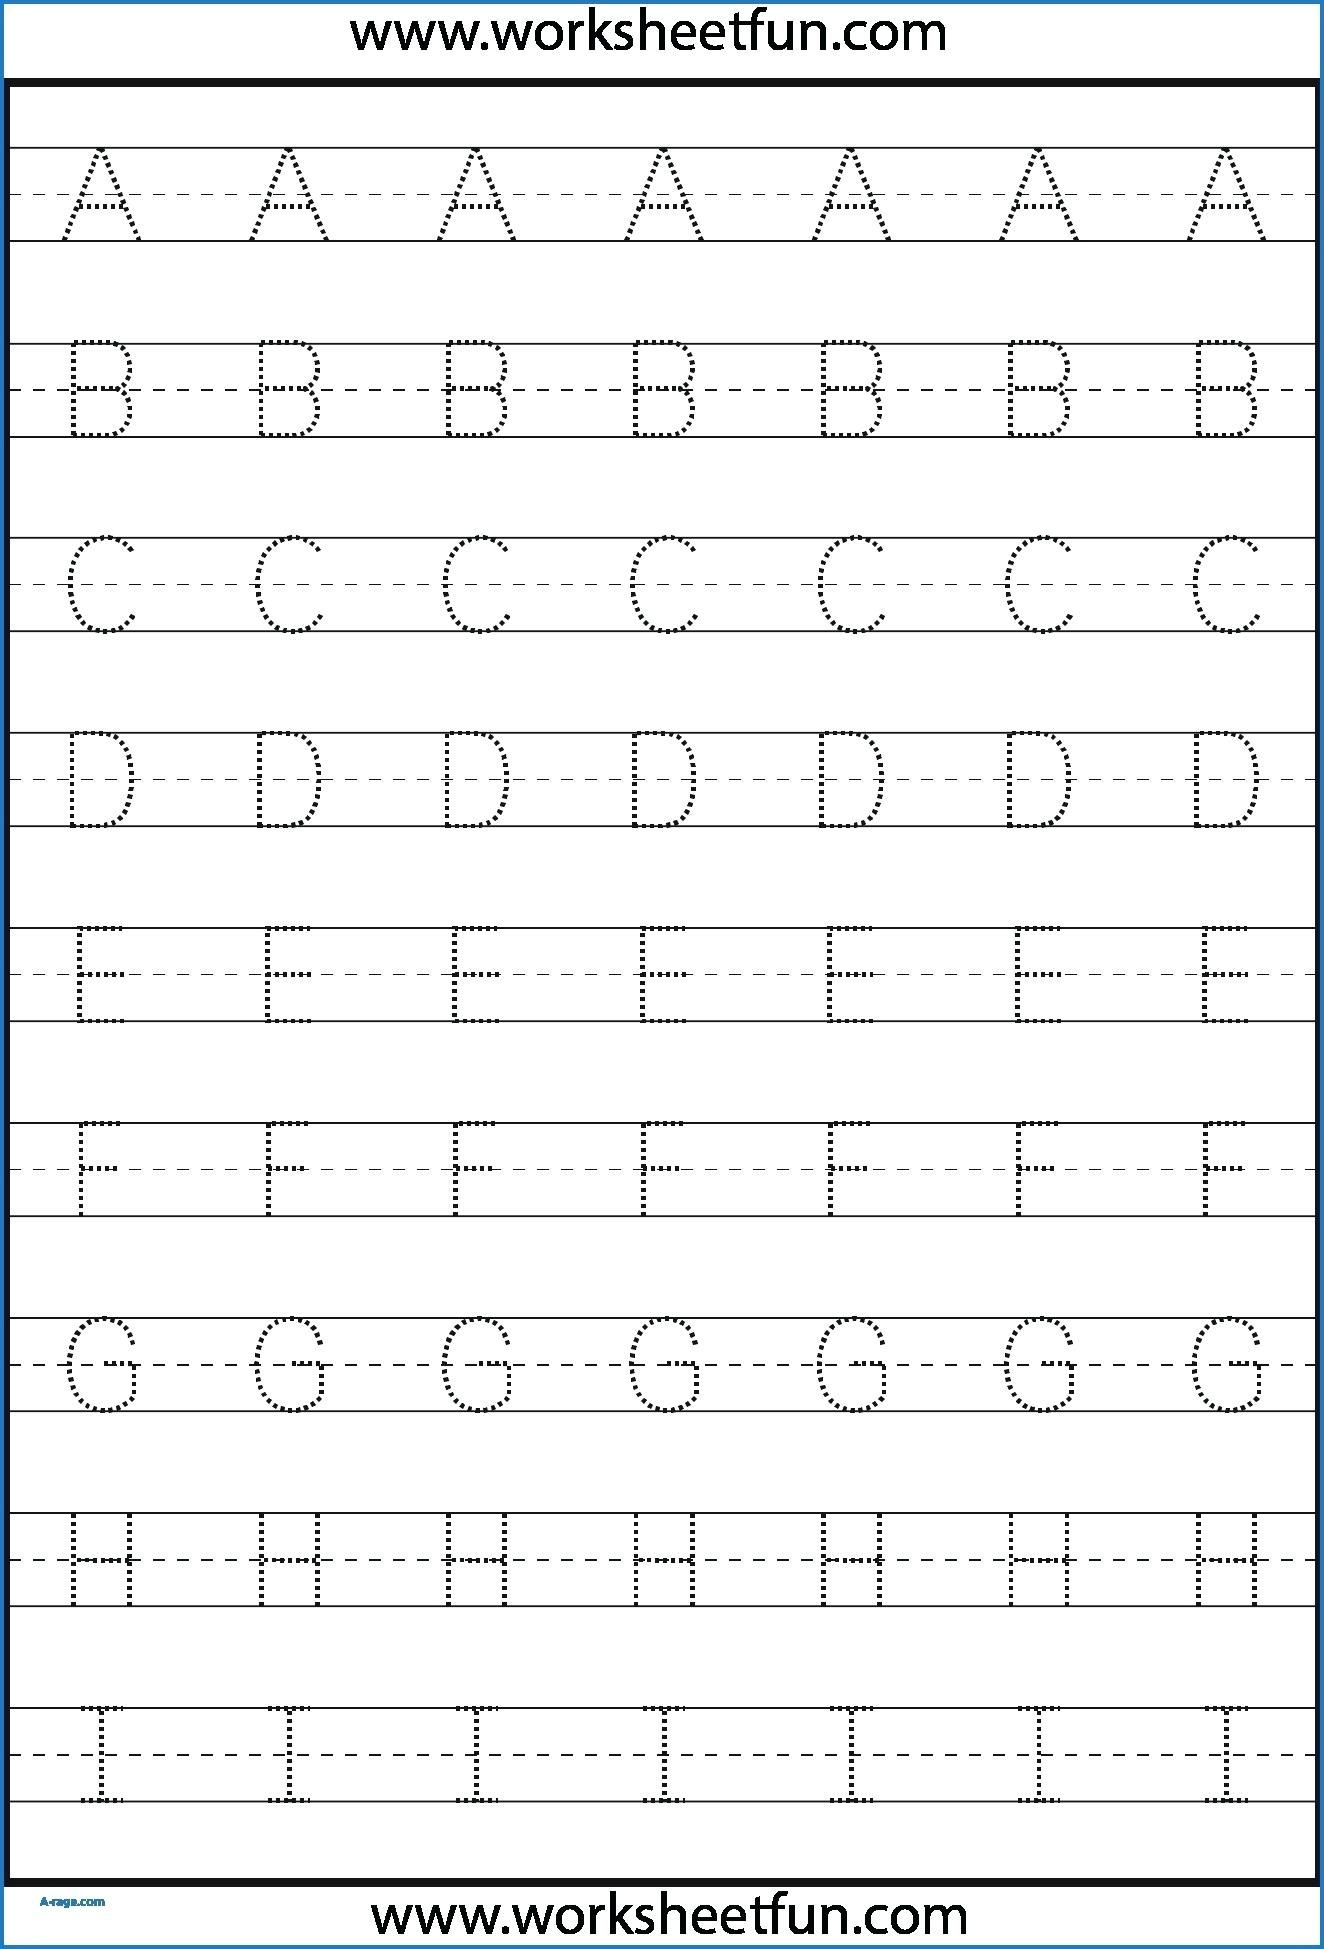 Kindergarten Letter Tracing Worksheets Pdf - Wallpaper Image inside Letter G Worksheets Pdf